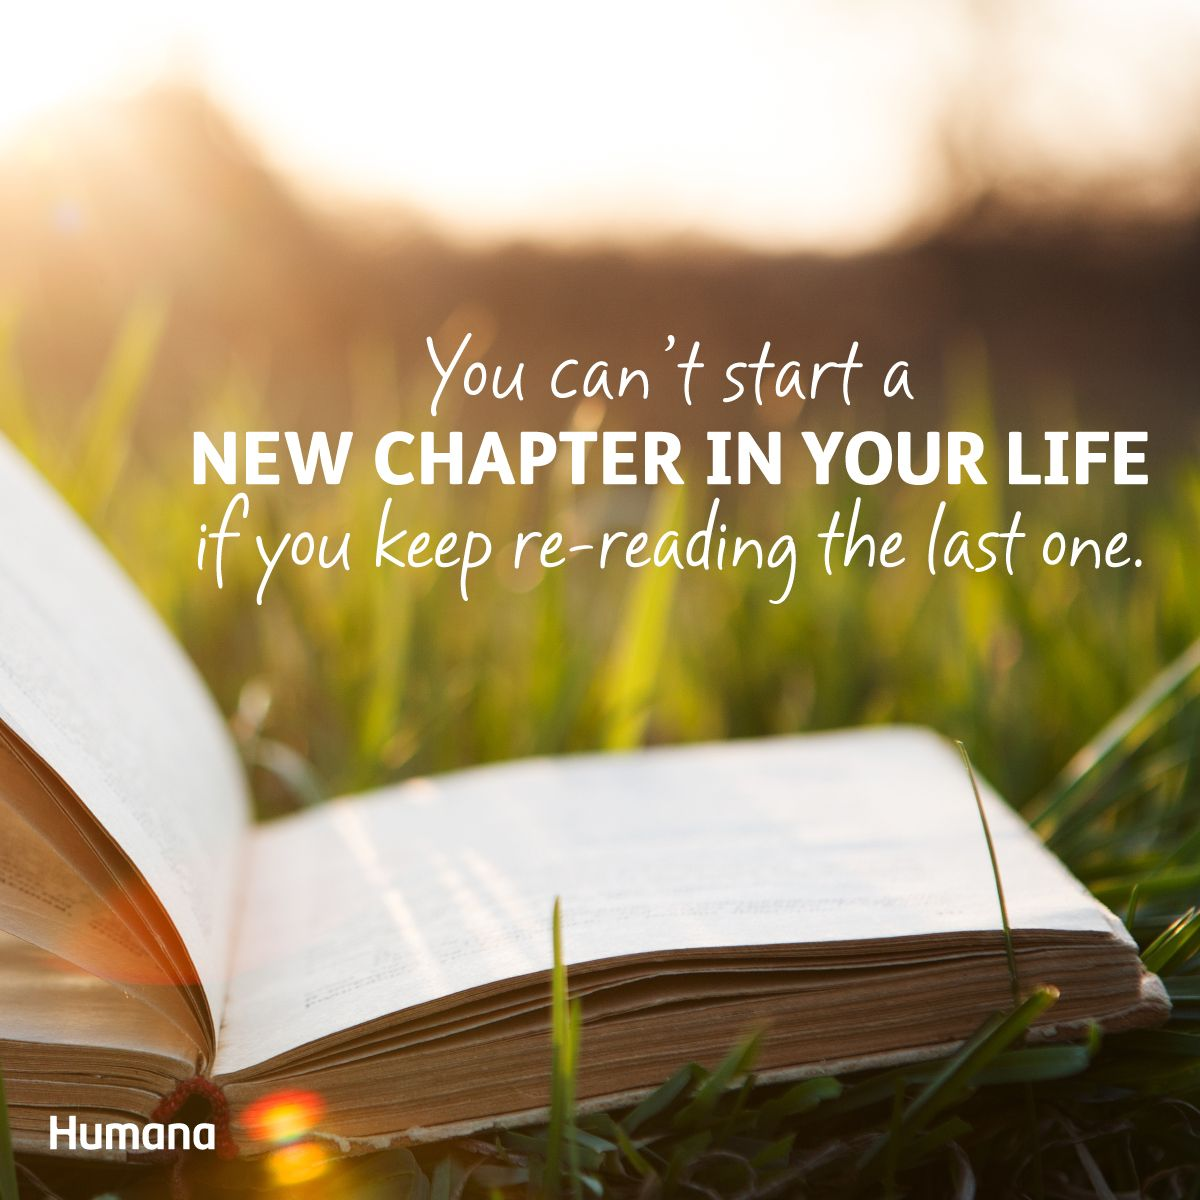 You can't start a new chapter in your life if you keep re